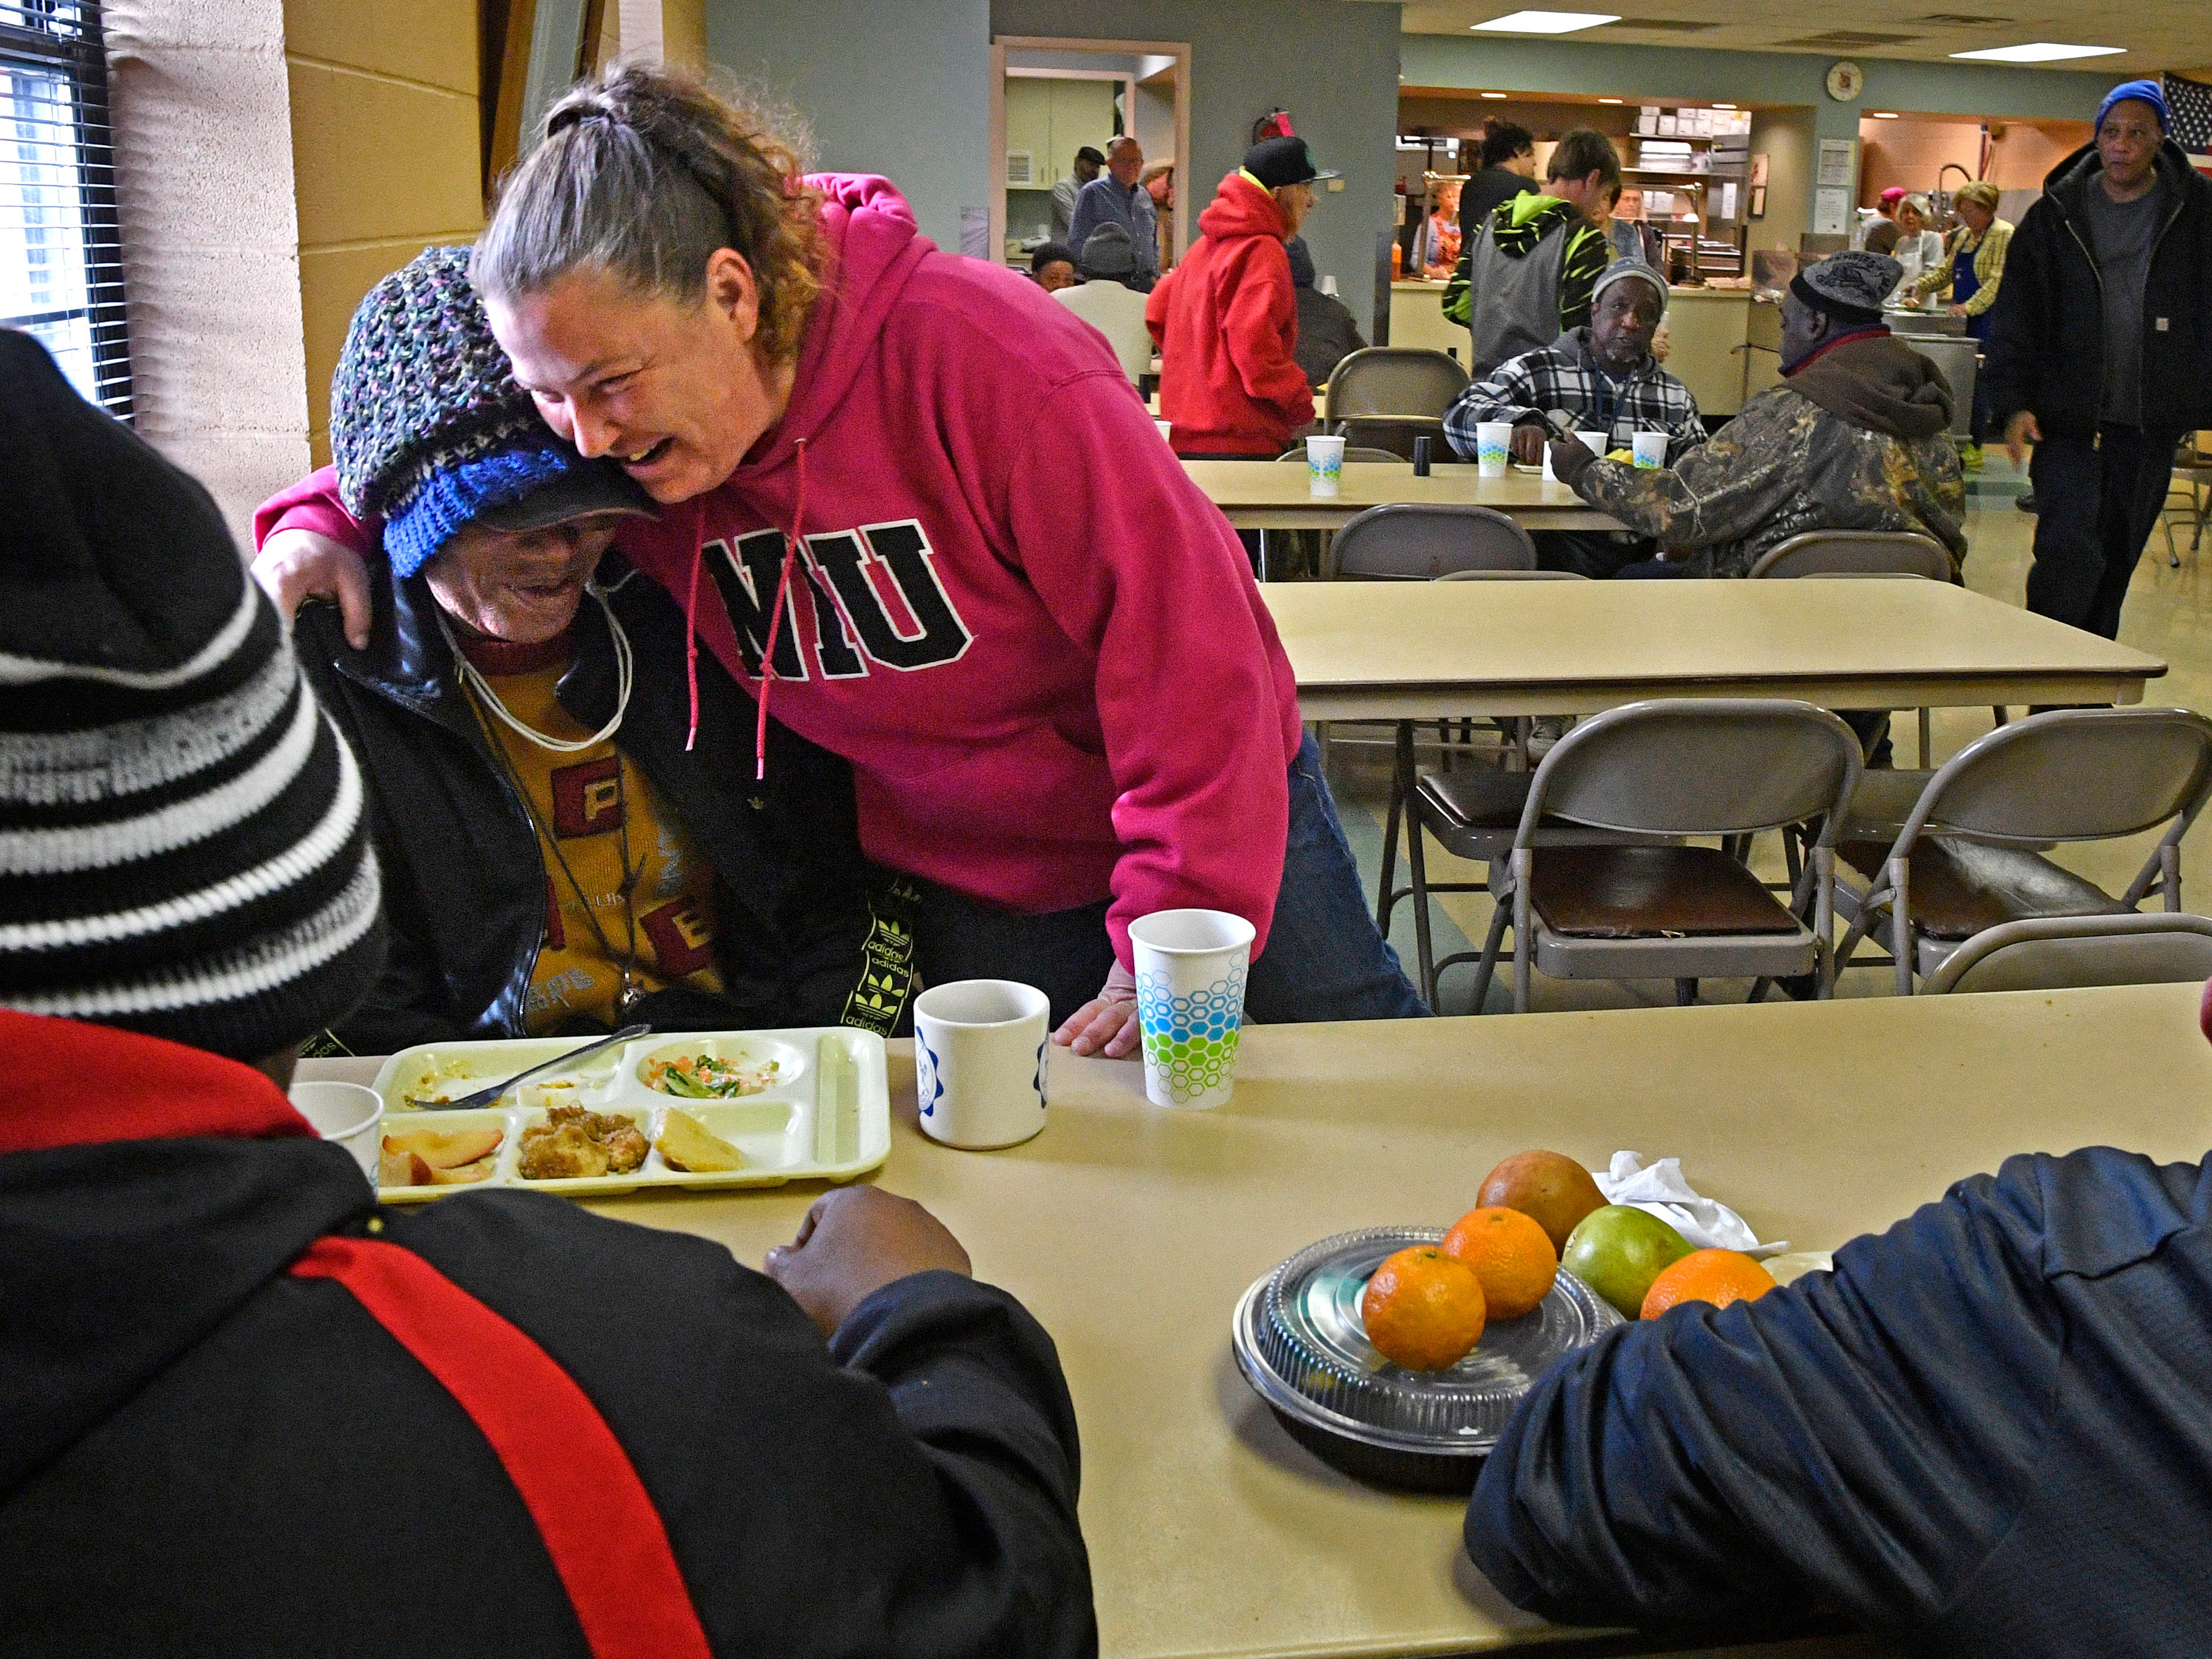 Tommi Jo French gives a hug as she talks with Charles Gaines at the Loaves and Fishes food ministry where they have received many meals while being homeless Monday, Jan. 28, 2019, in Clarksville, Tenn.